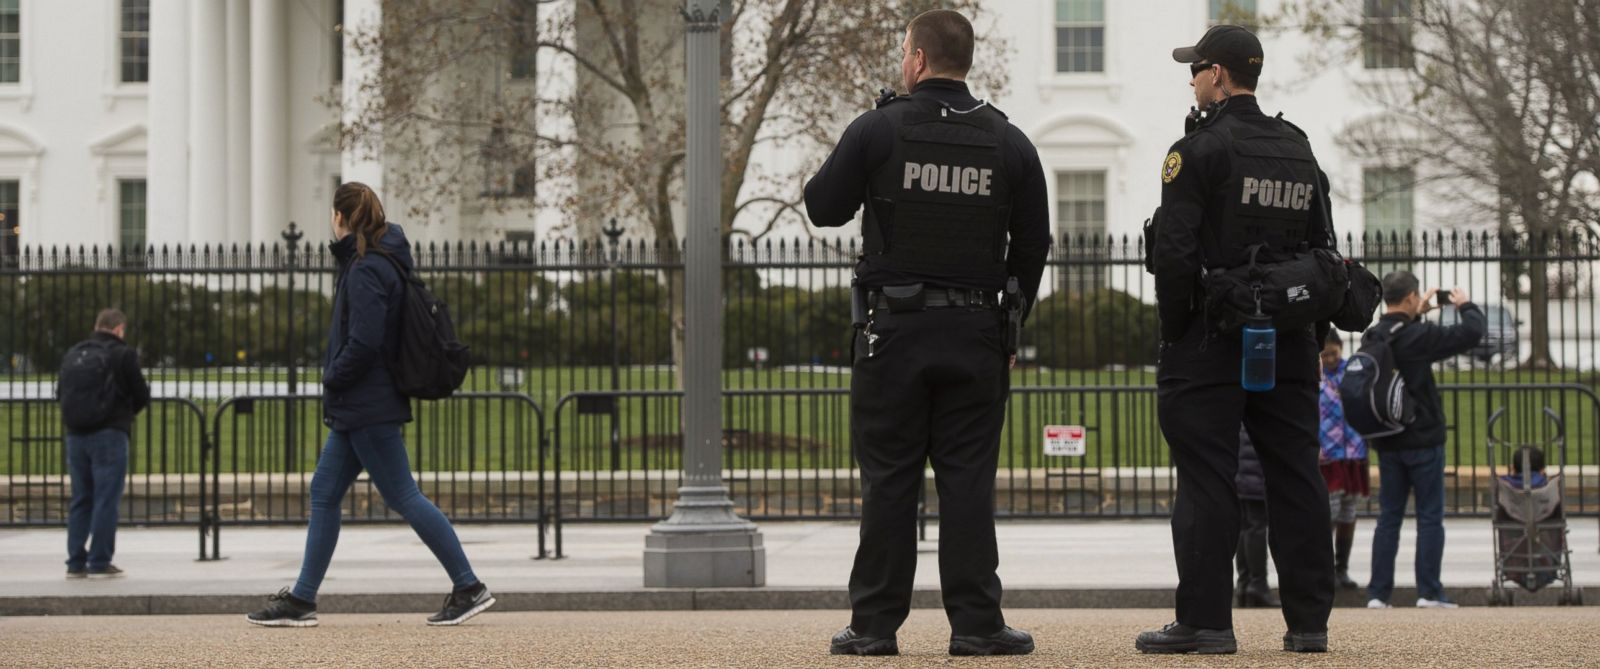 PHOTO: Members of the Secret Service Uniformed Divison patrol alongside the security fence around the perimeter of the White House in Washington, D.C., March 18, 2017.